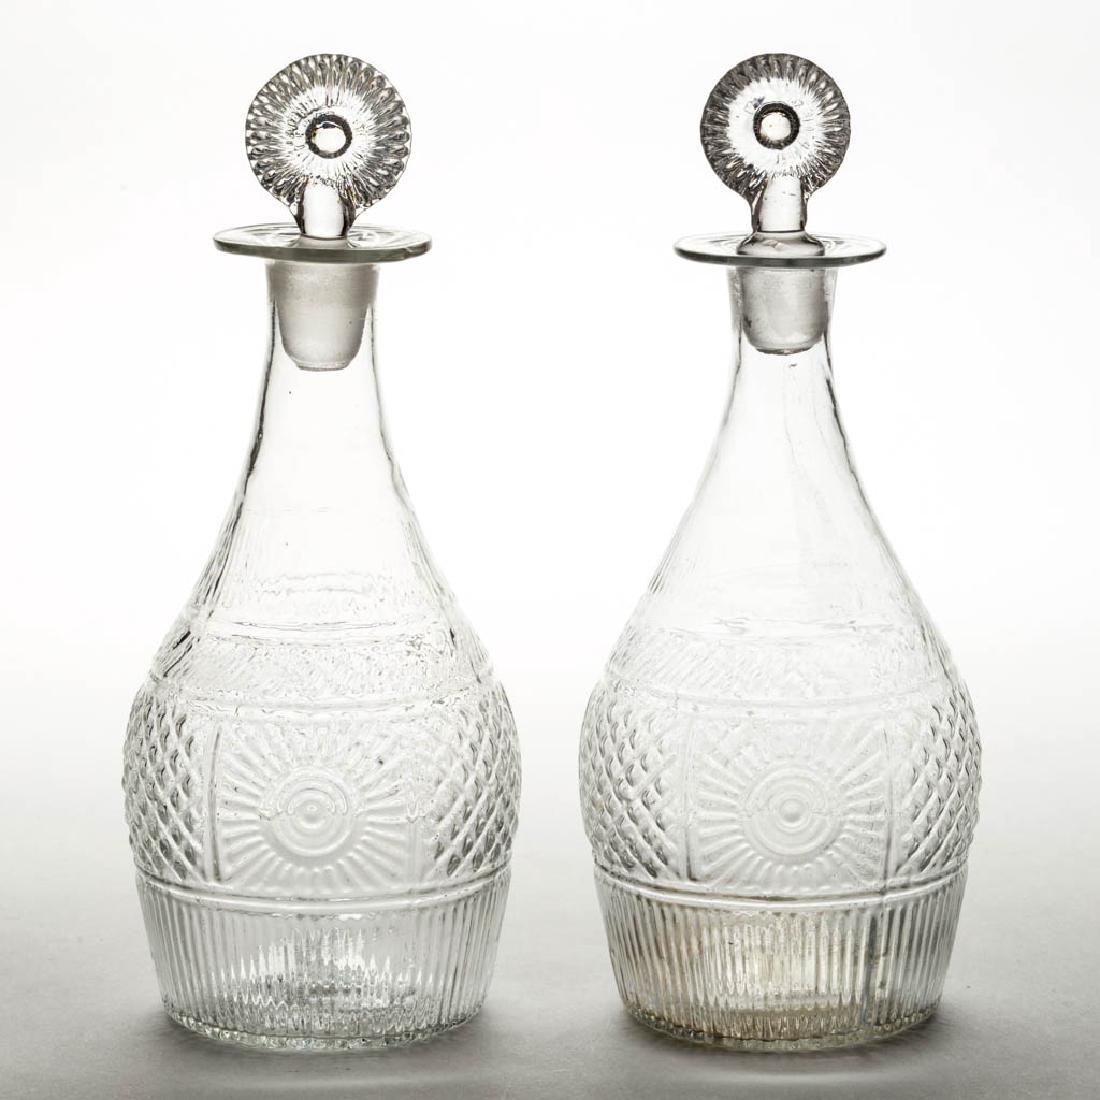 BLOWN-MOLDED GIII-16 PAIR OF PINT DECANTERS